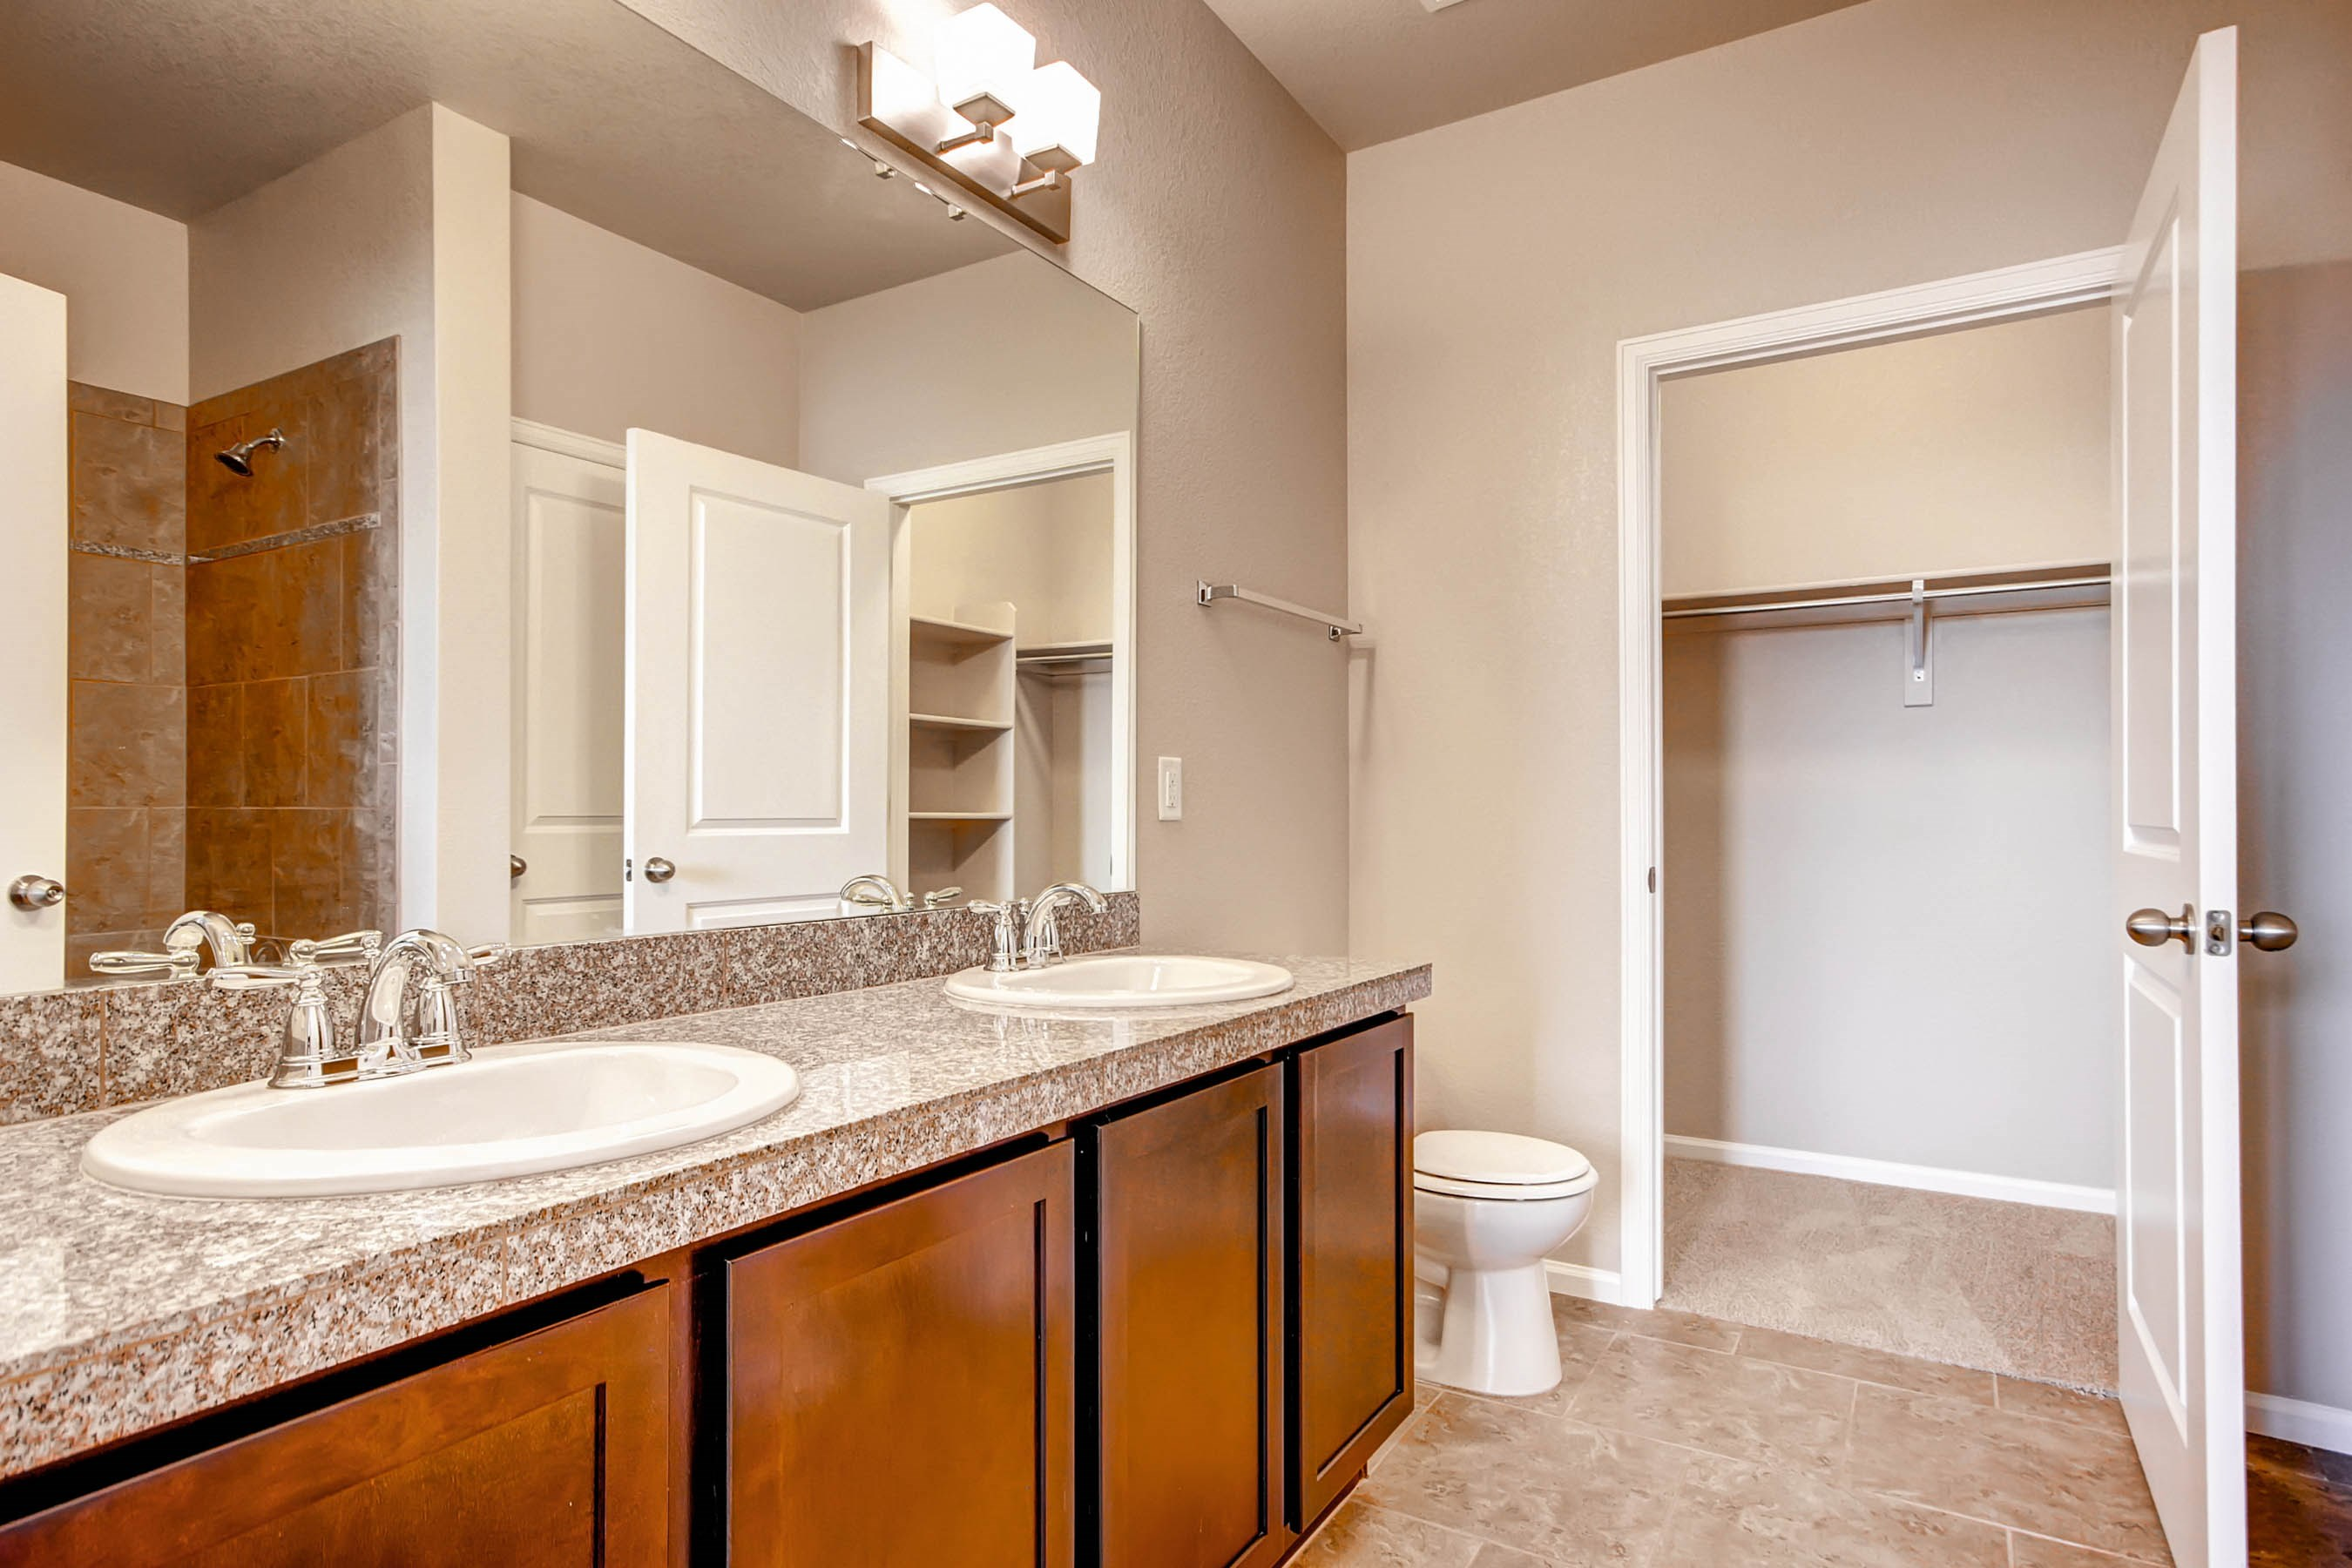 Bathroom at Maple Leaf Apartments in Arvada, CO